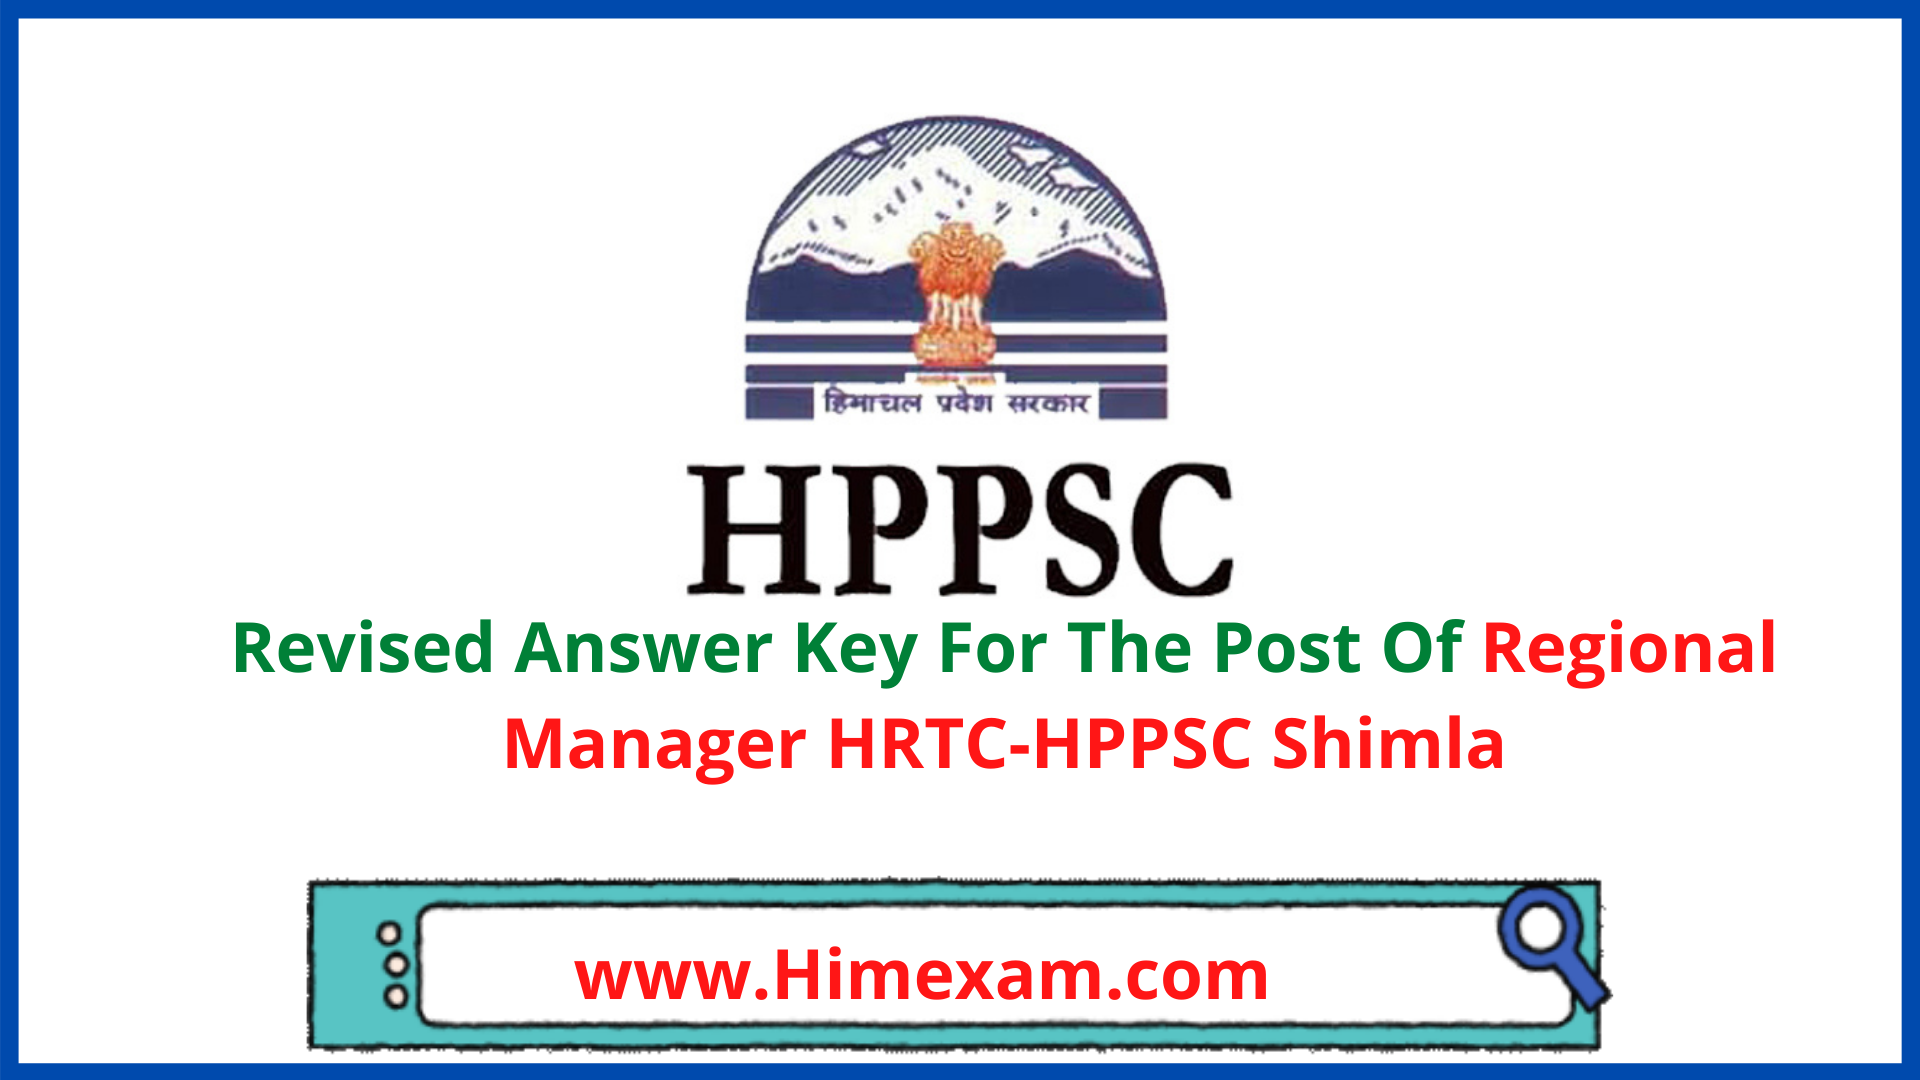 Revised Answer Key For The Post Of Regional Manager HRTC-HPPSC Shimla